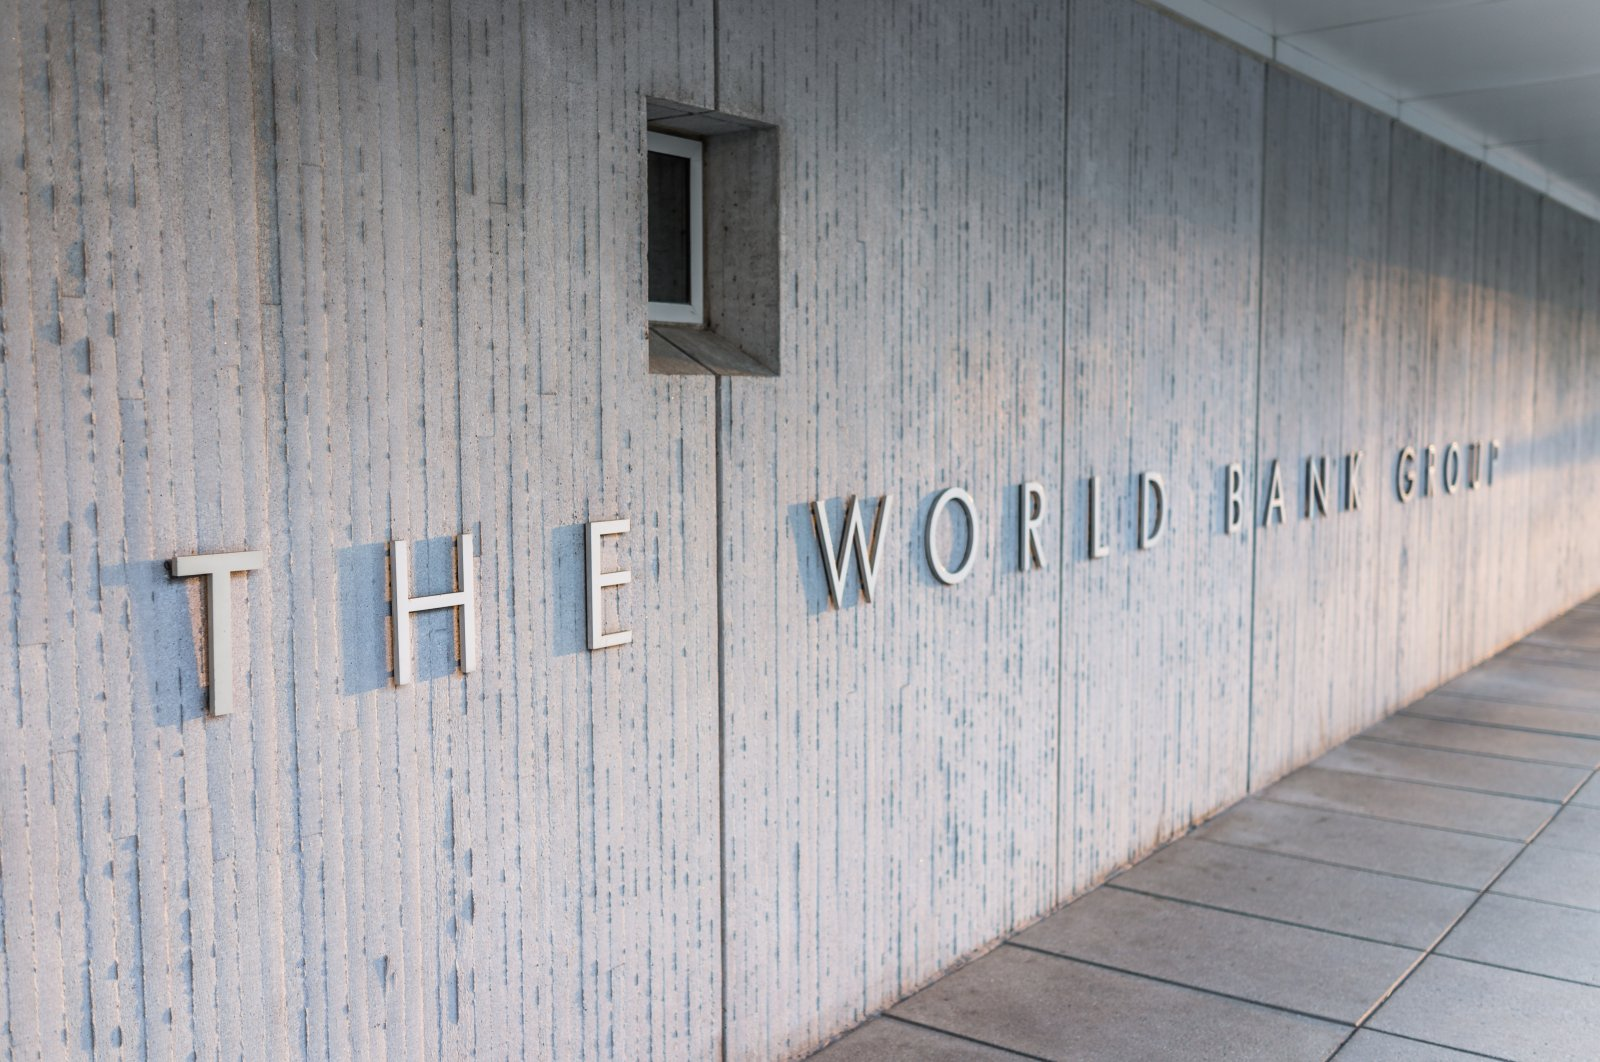 The World Bank Group sign on the exterior of the building, Washington, D.C., U.S., March 4, 2017. (Shutterstock Photo)